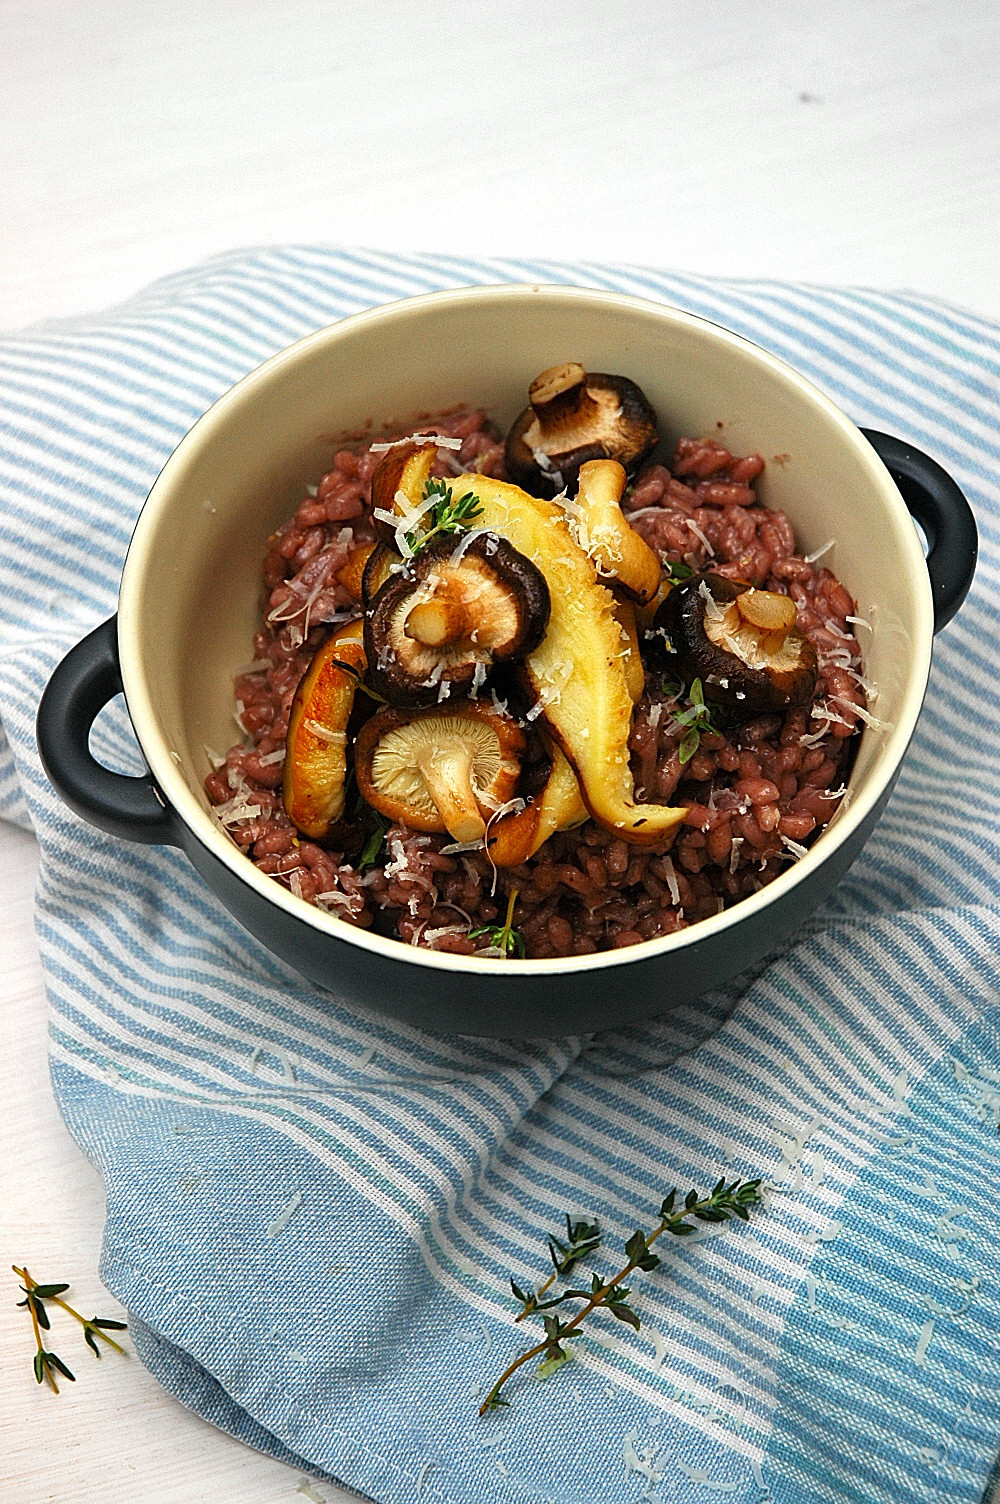 risotto creamy red wine risotto delicious buttery shiitake mushrooms ...